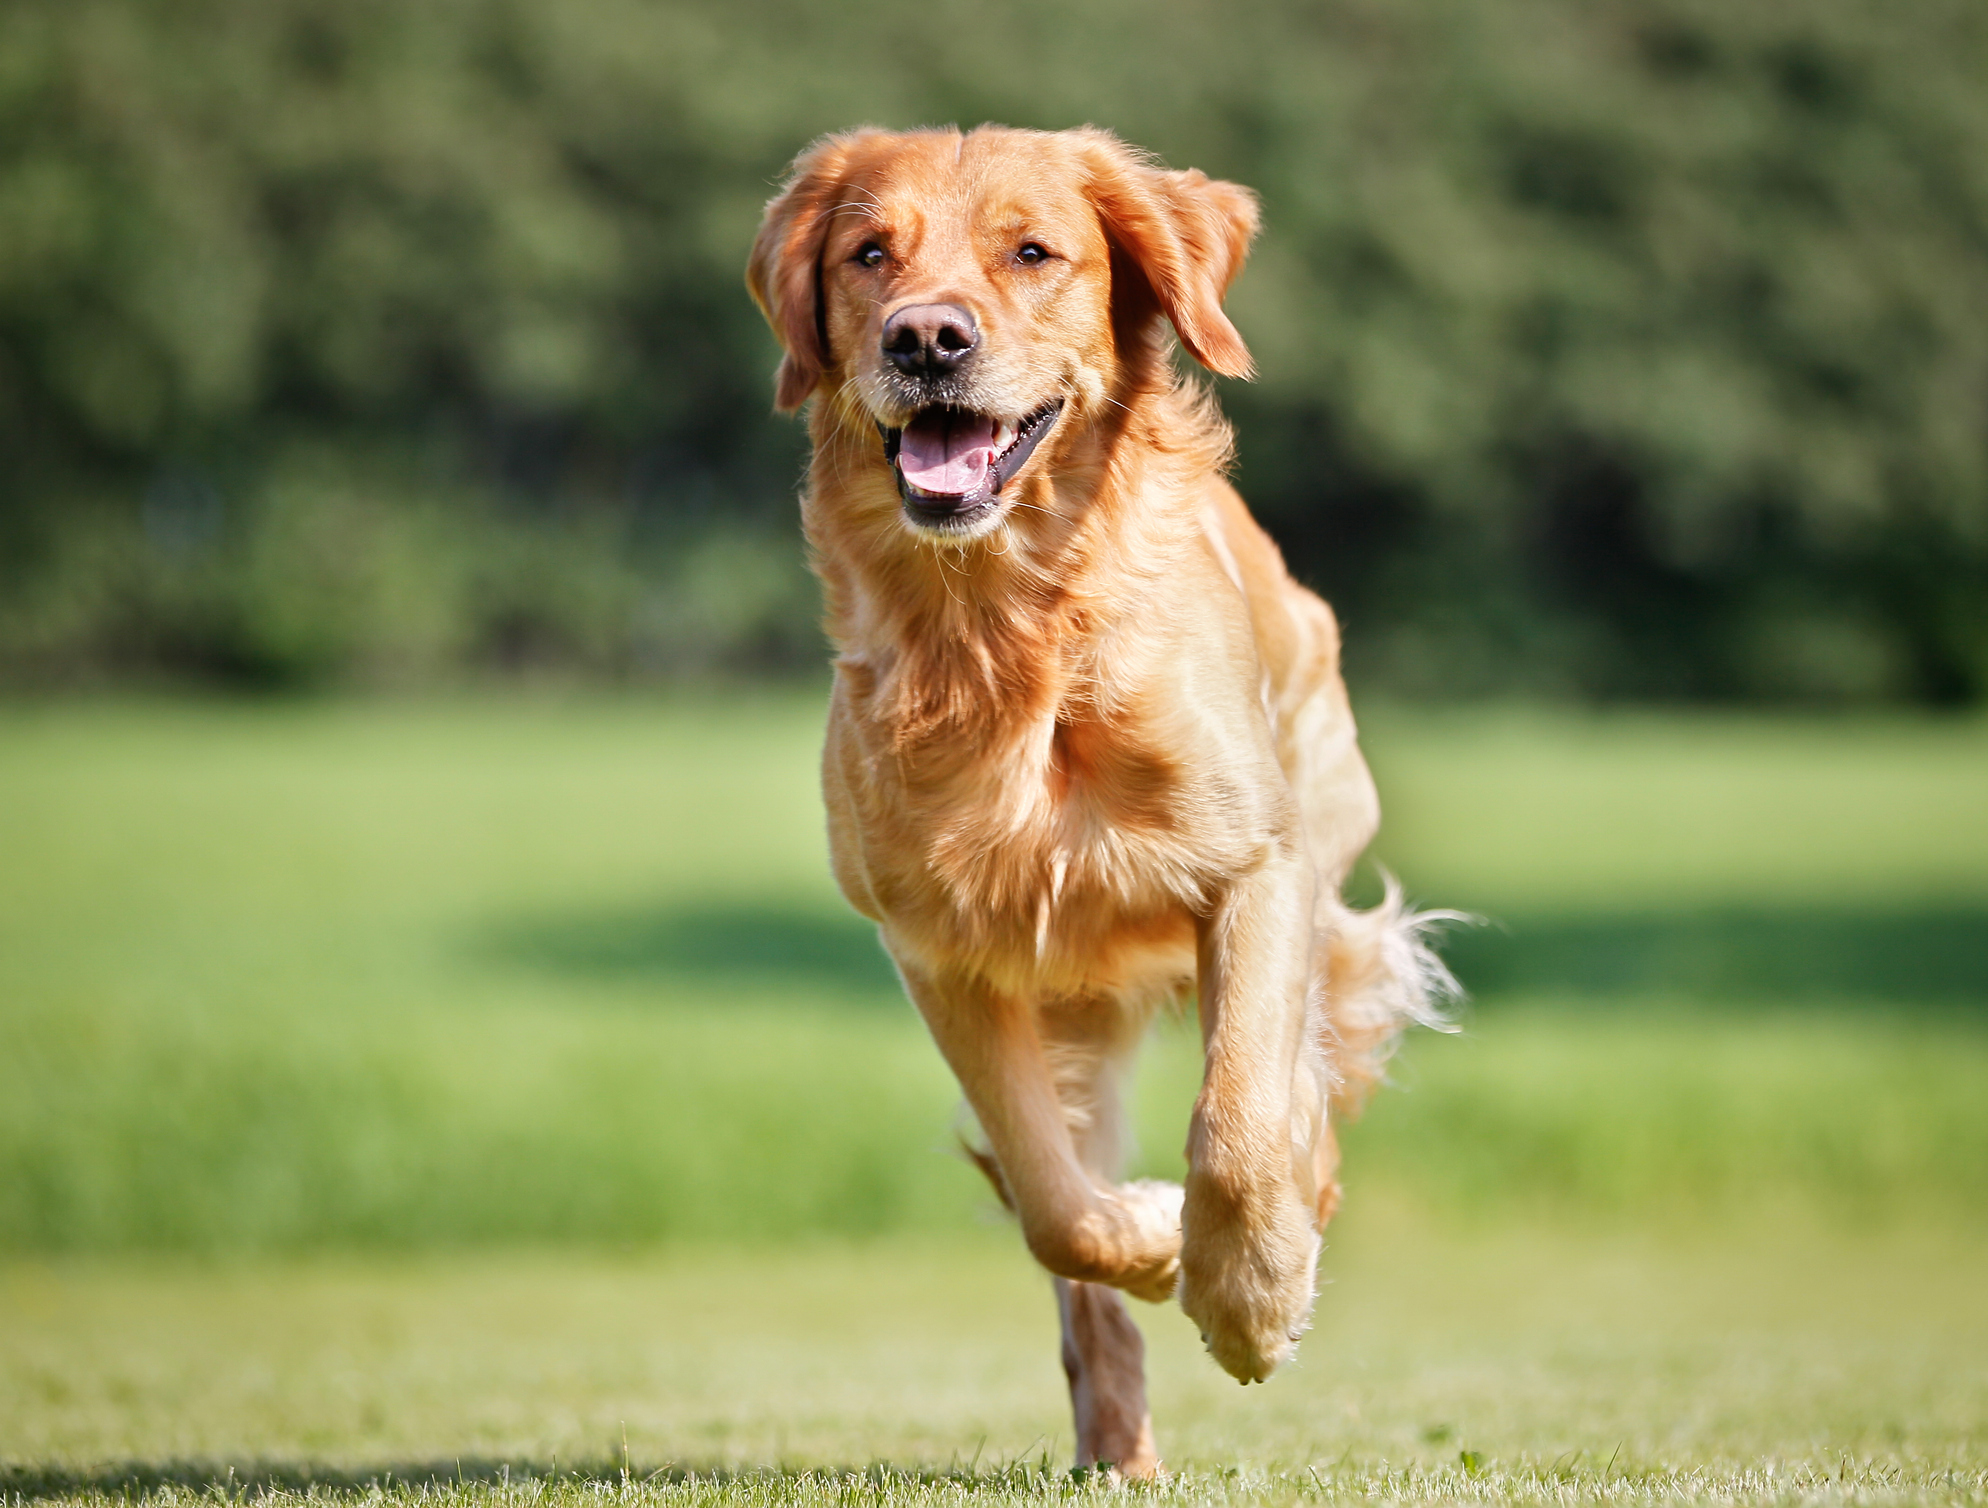 4 Important Practices That Can Prevent Orthopedic Problems in Your Dog